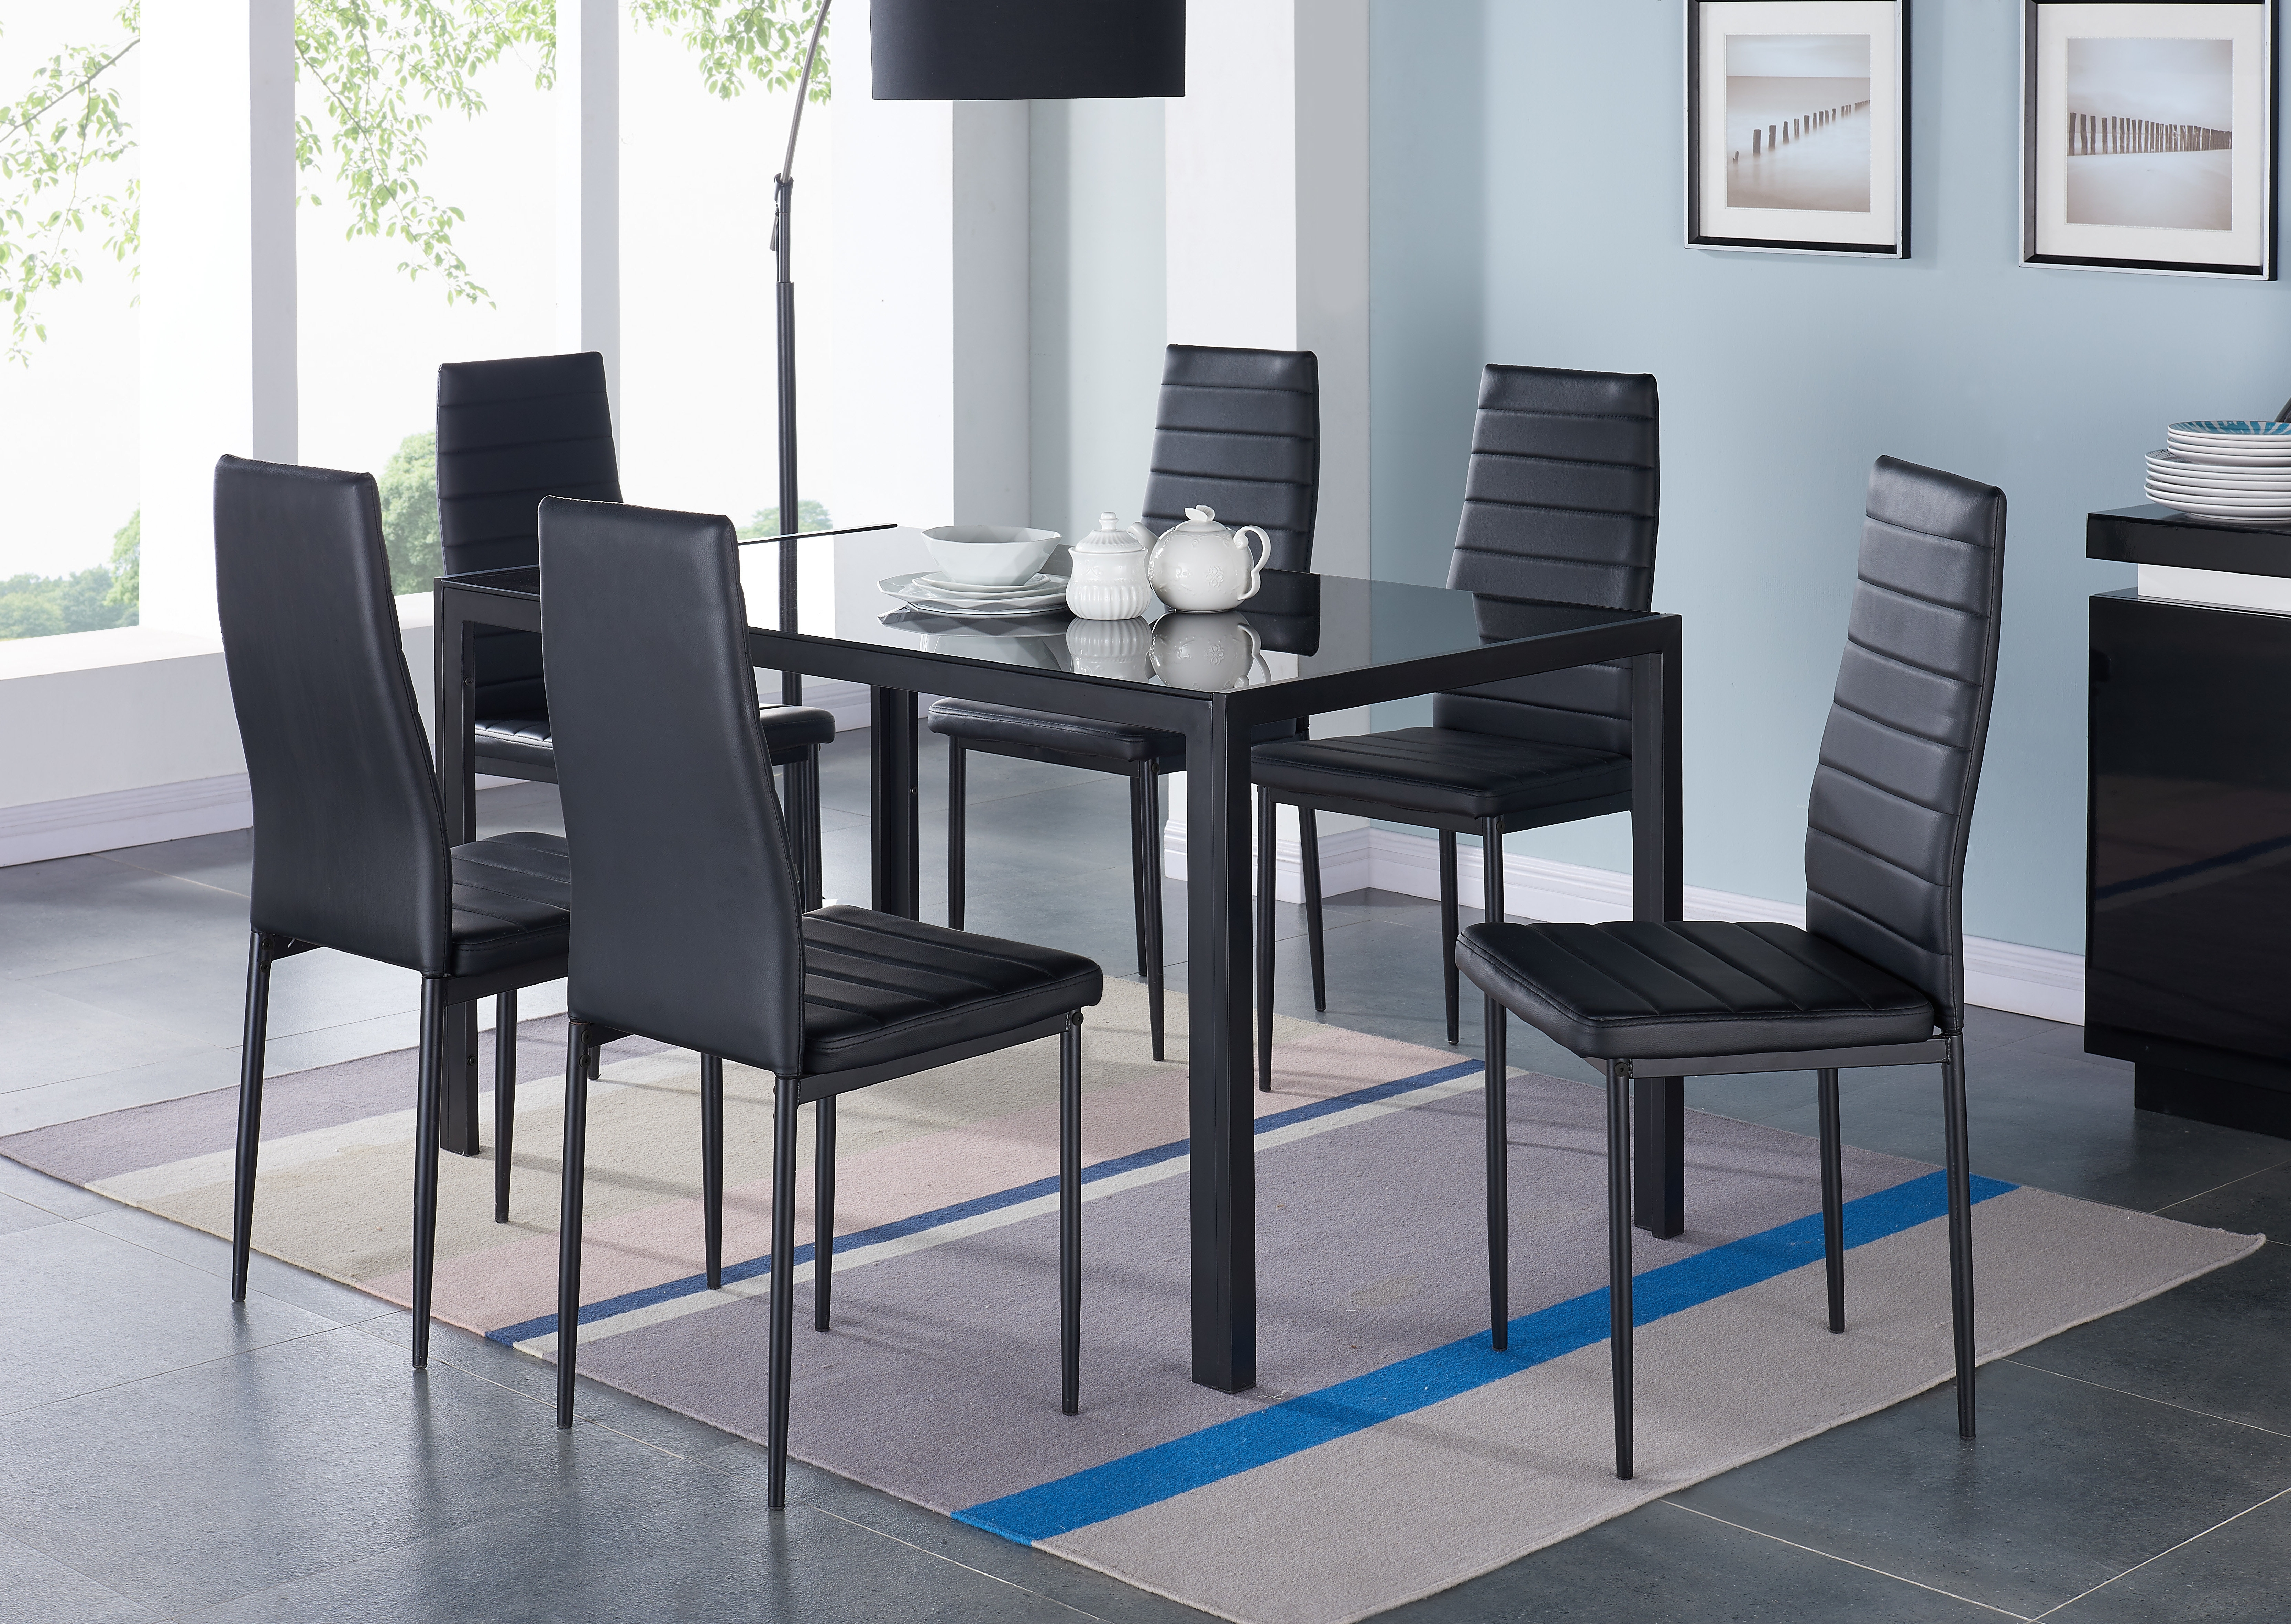 Black Glass Dining Tables 6 Chairs Pertaining To Well Known Orren Ellis Umber Glass Dining Table Set With 6 Chairs (Gallery 19 of 25)